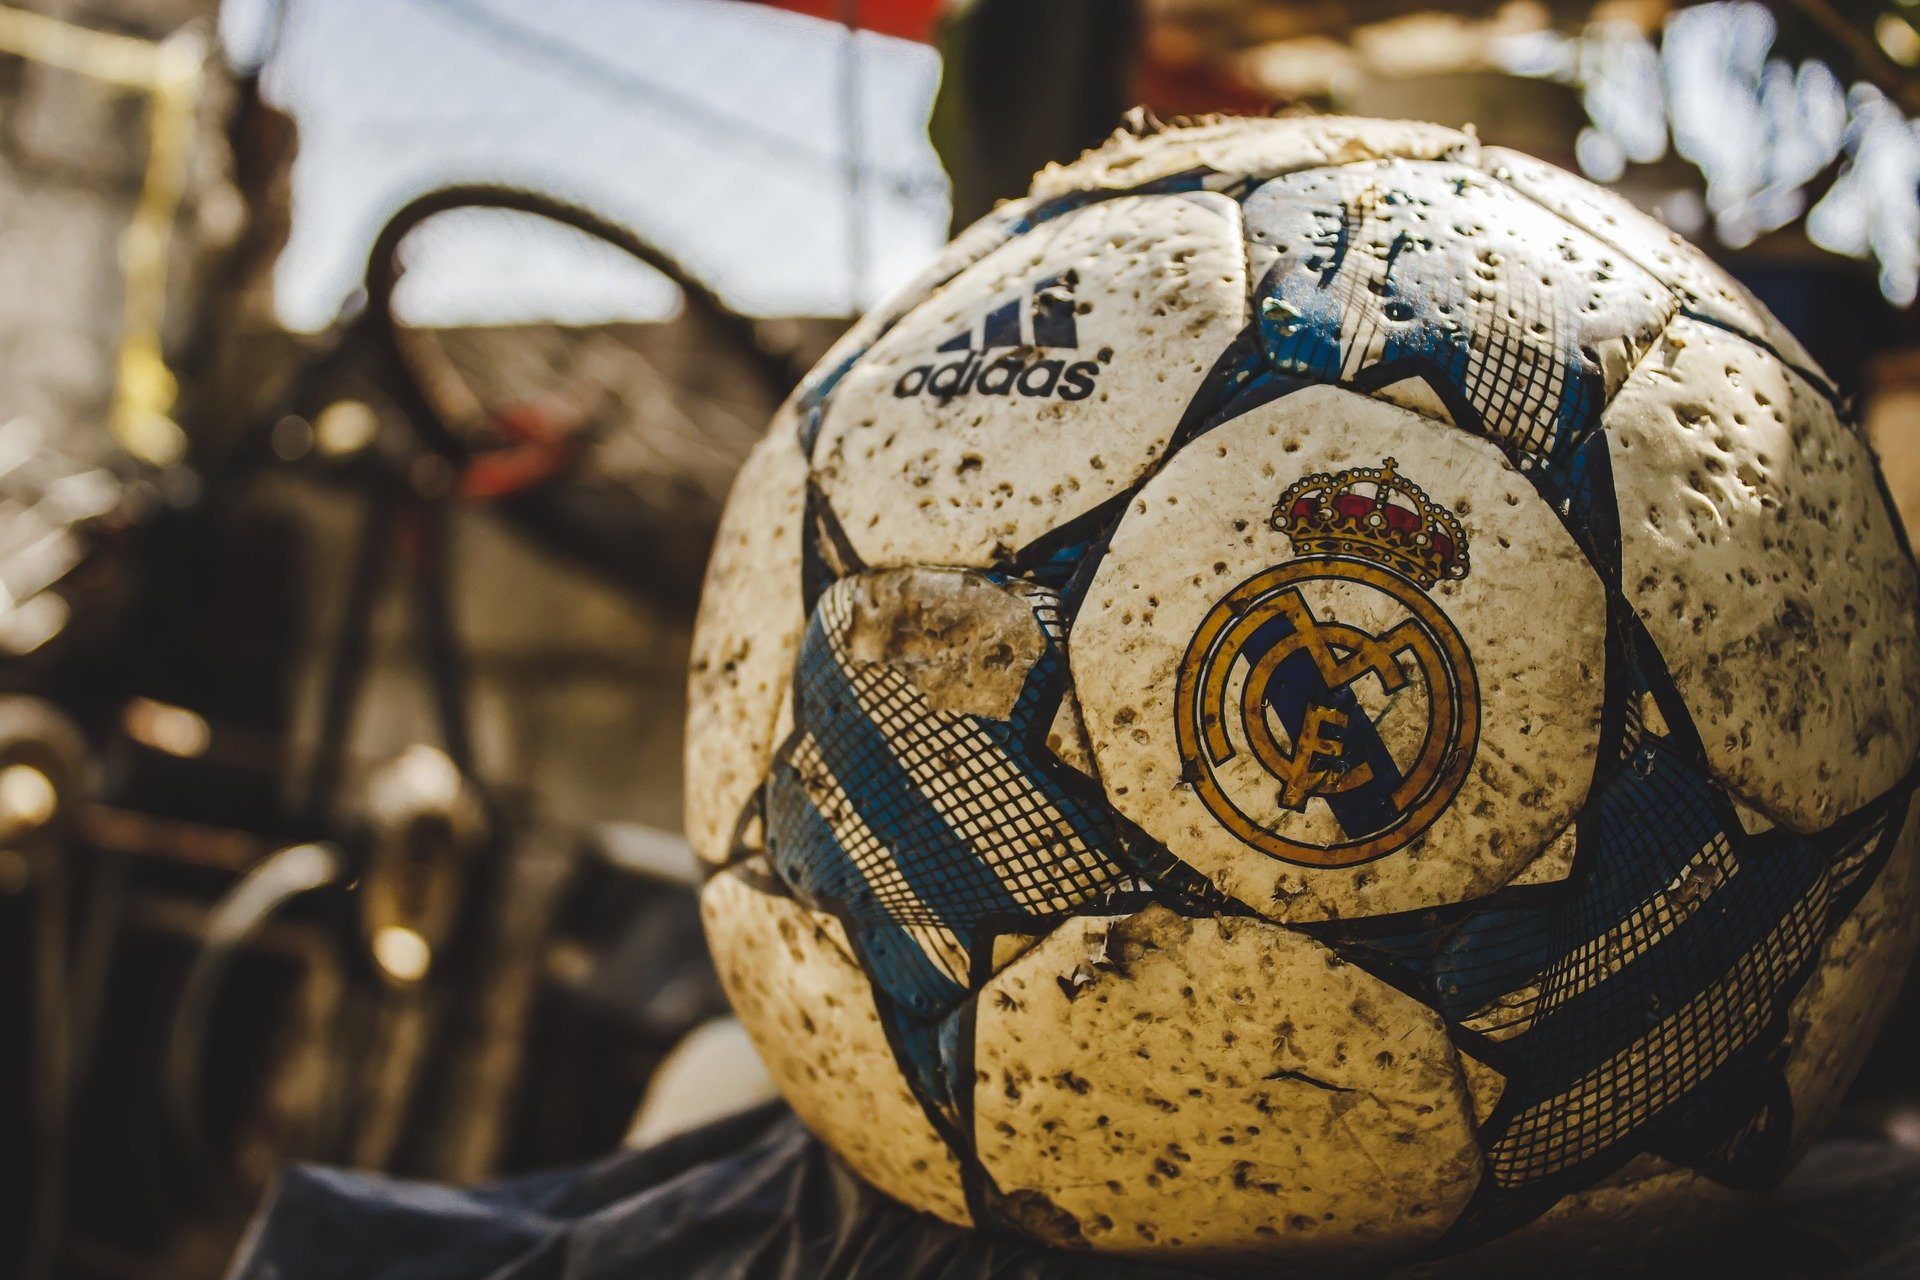 A used soccer ball